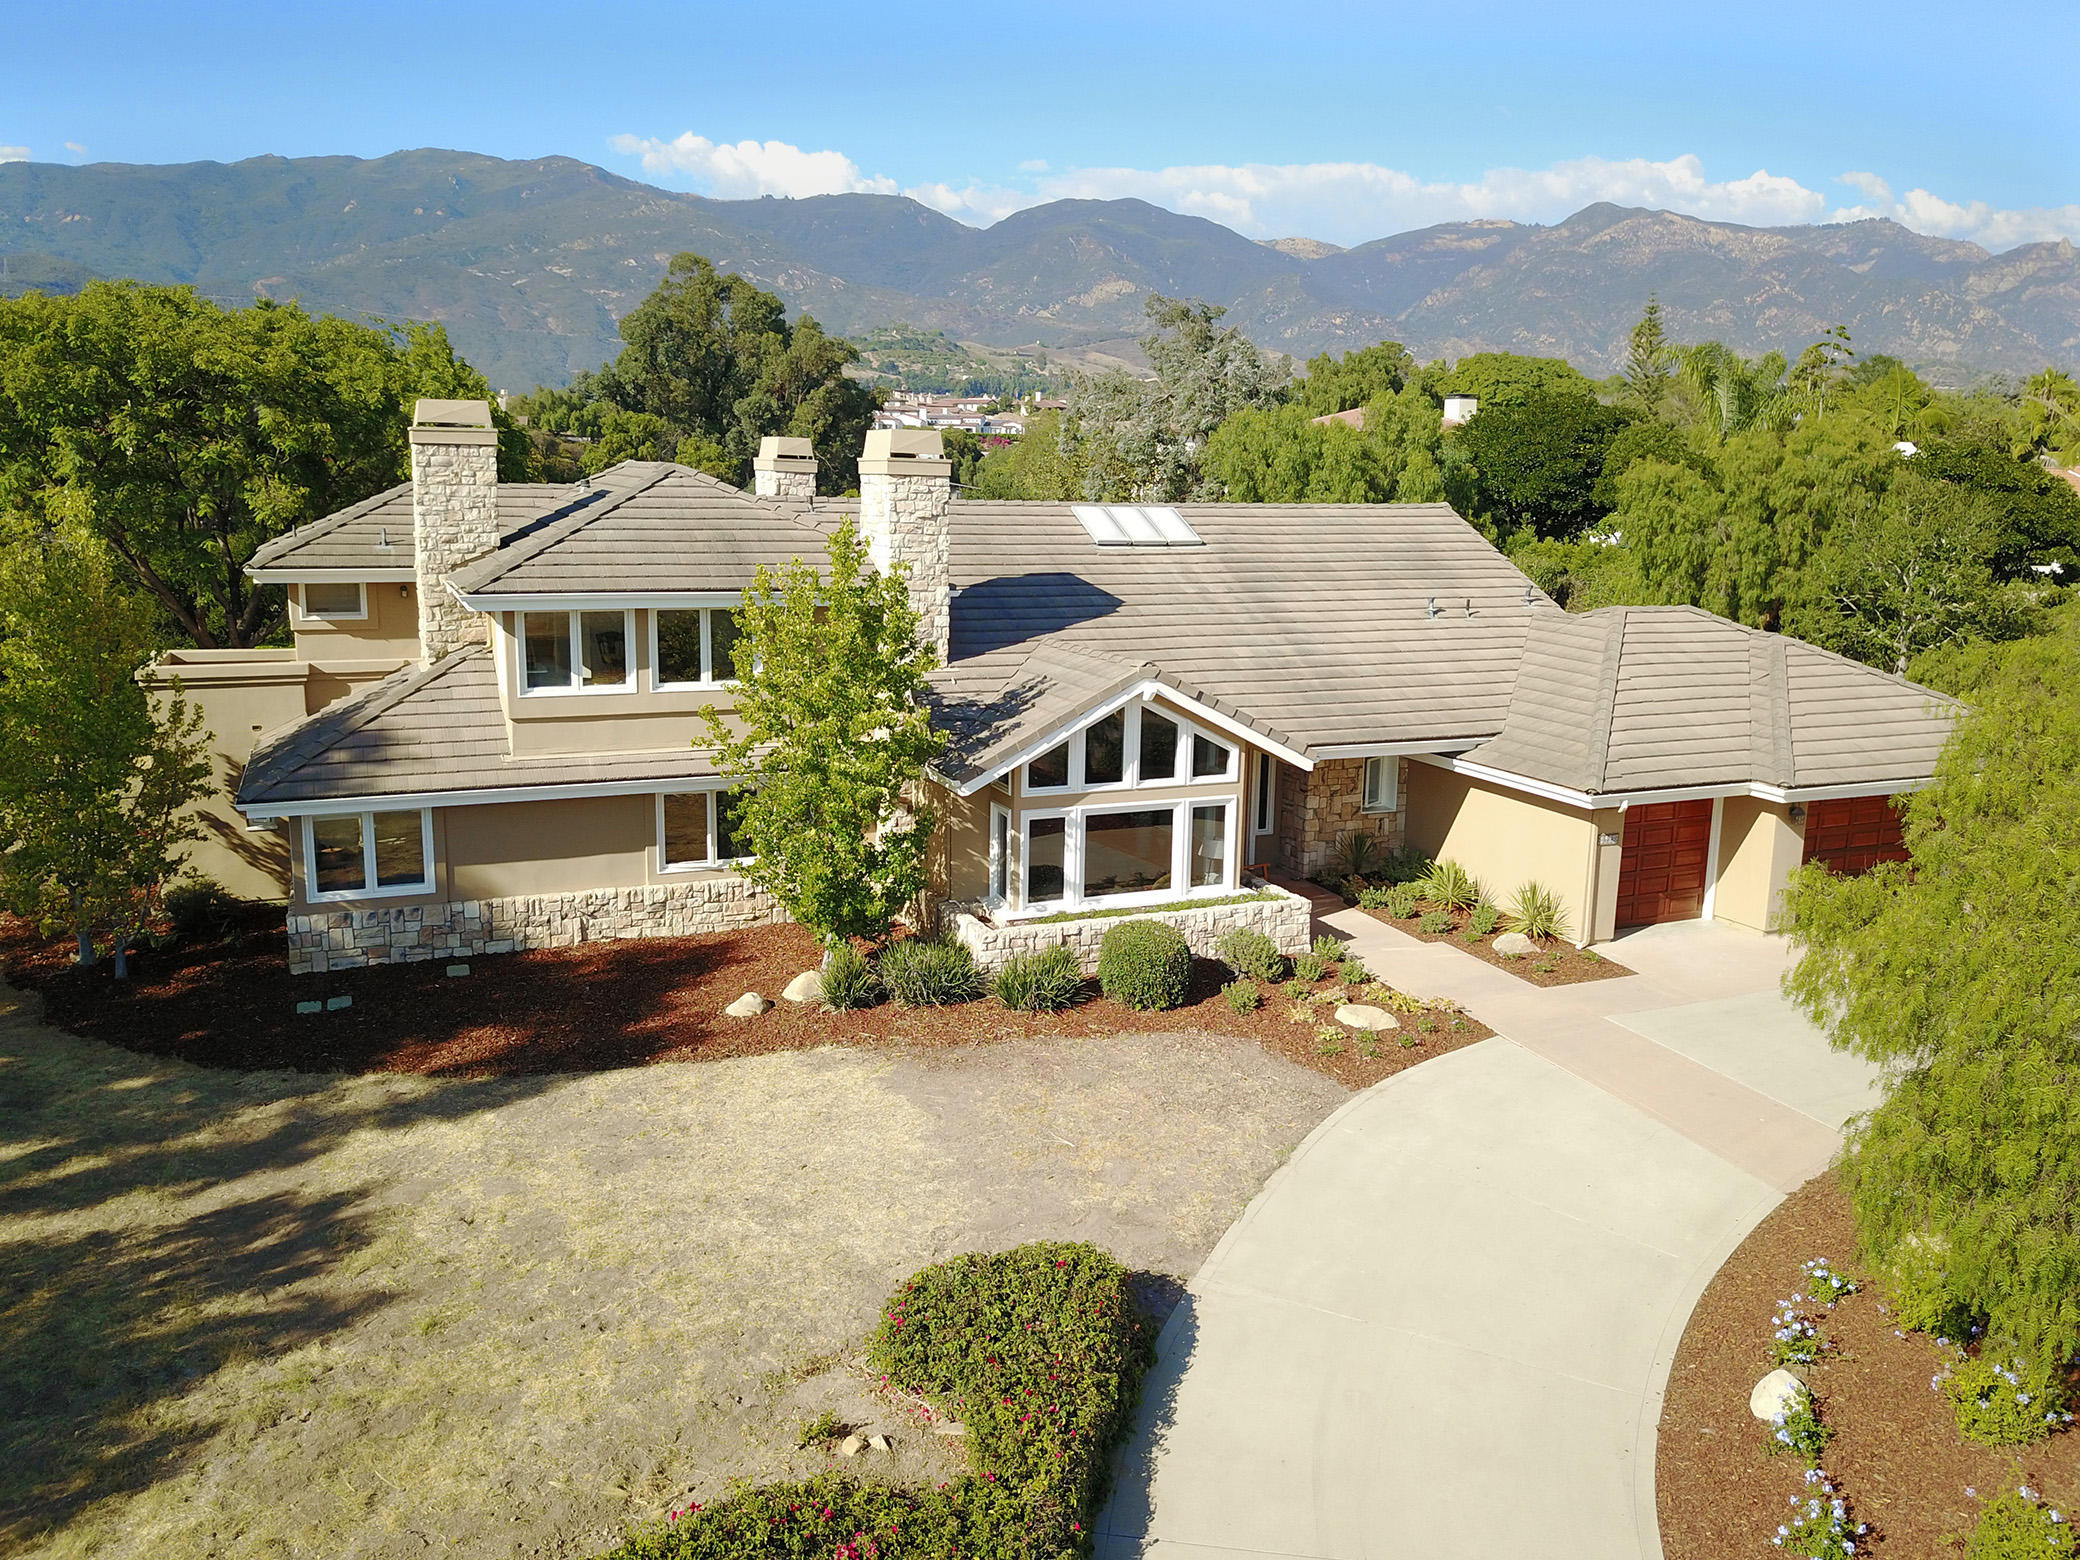 Property photo for 4660 Pennell Rd Santa Barbara, California 93111 - 17-2956